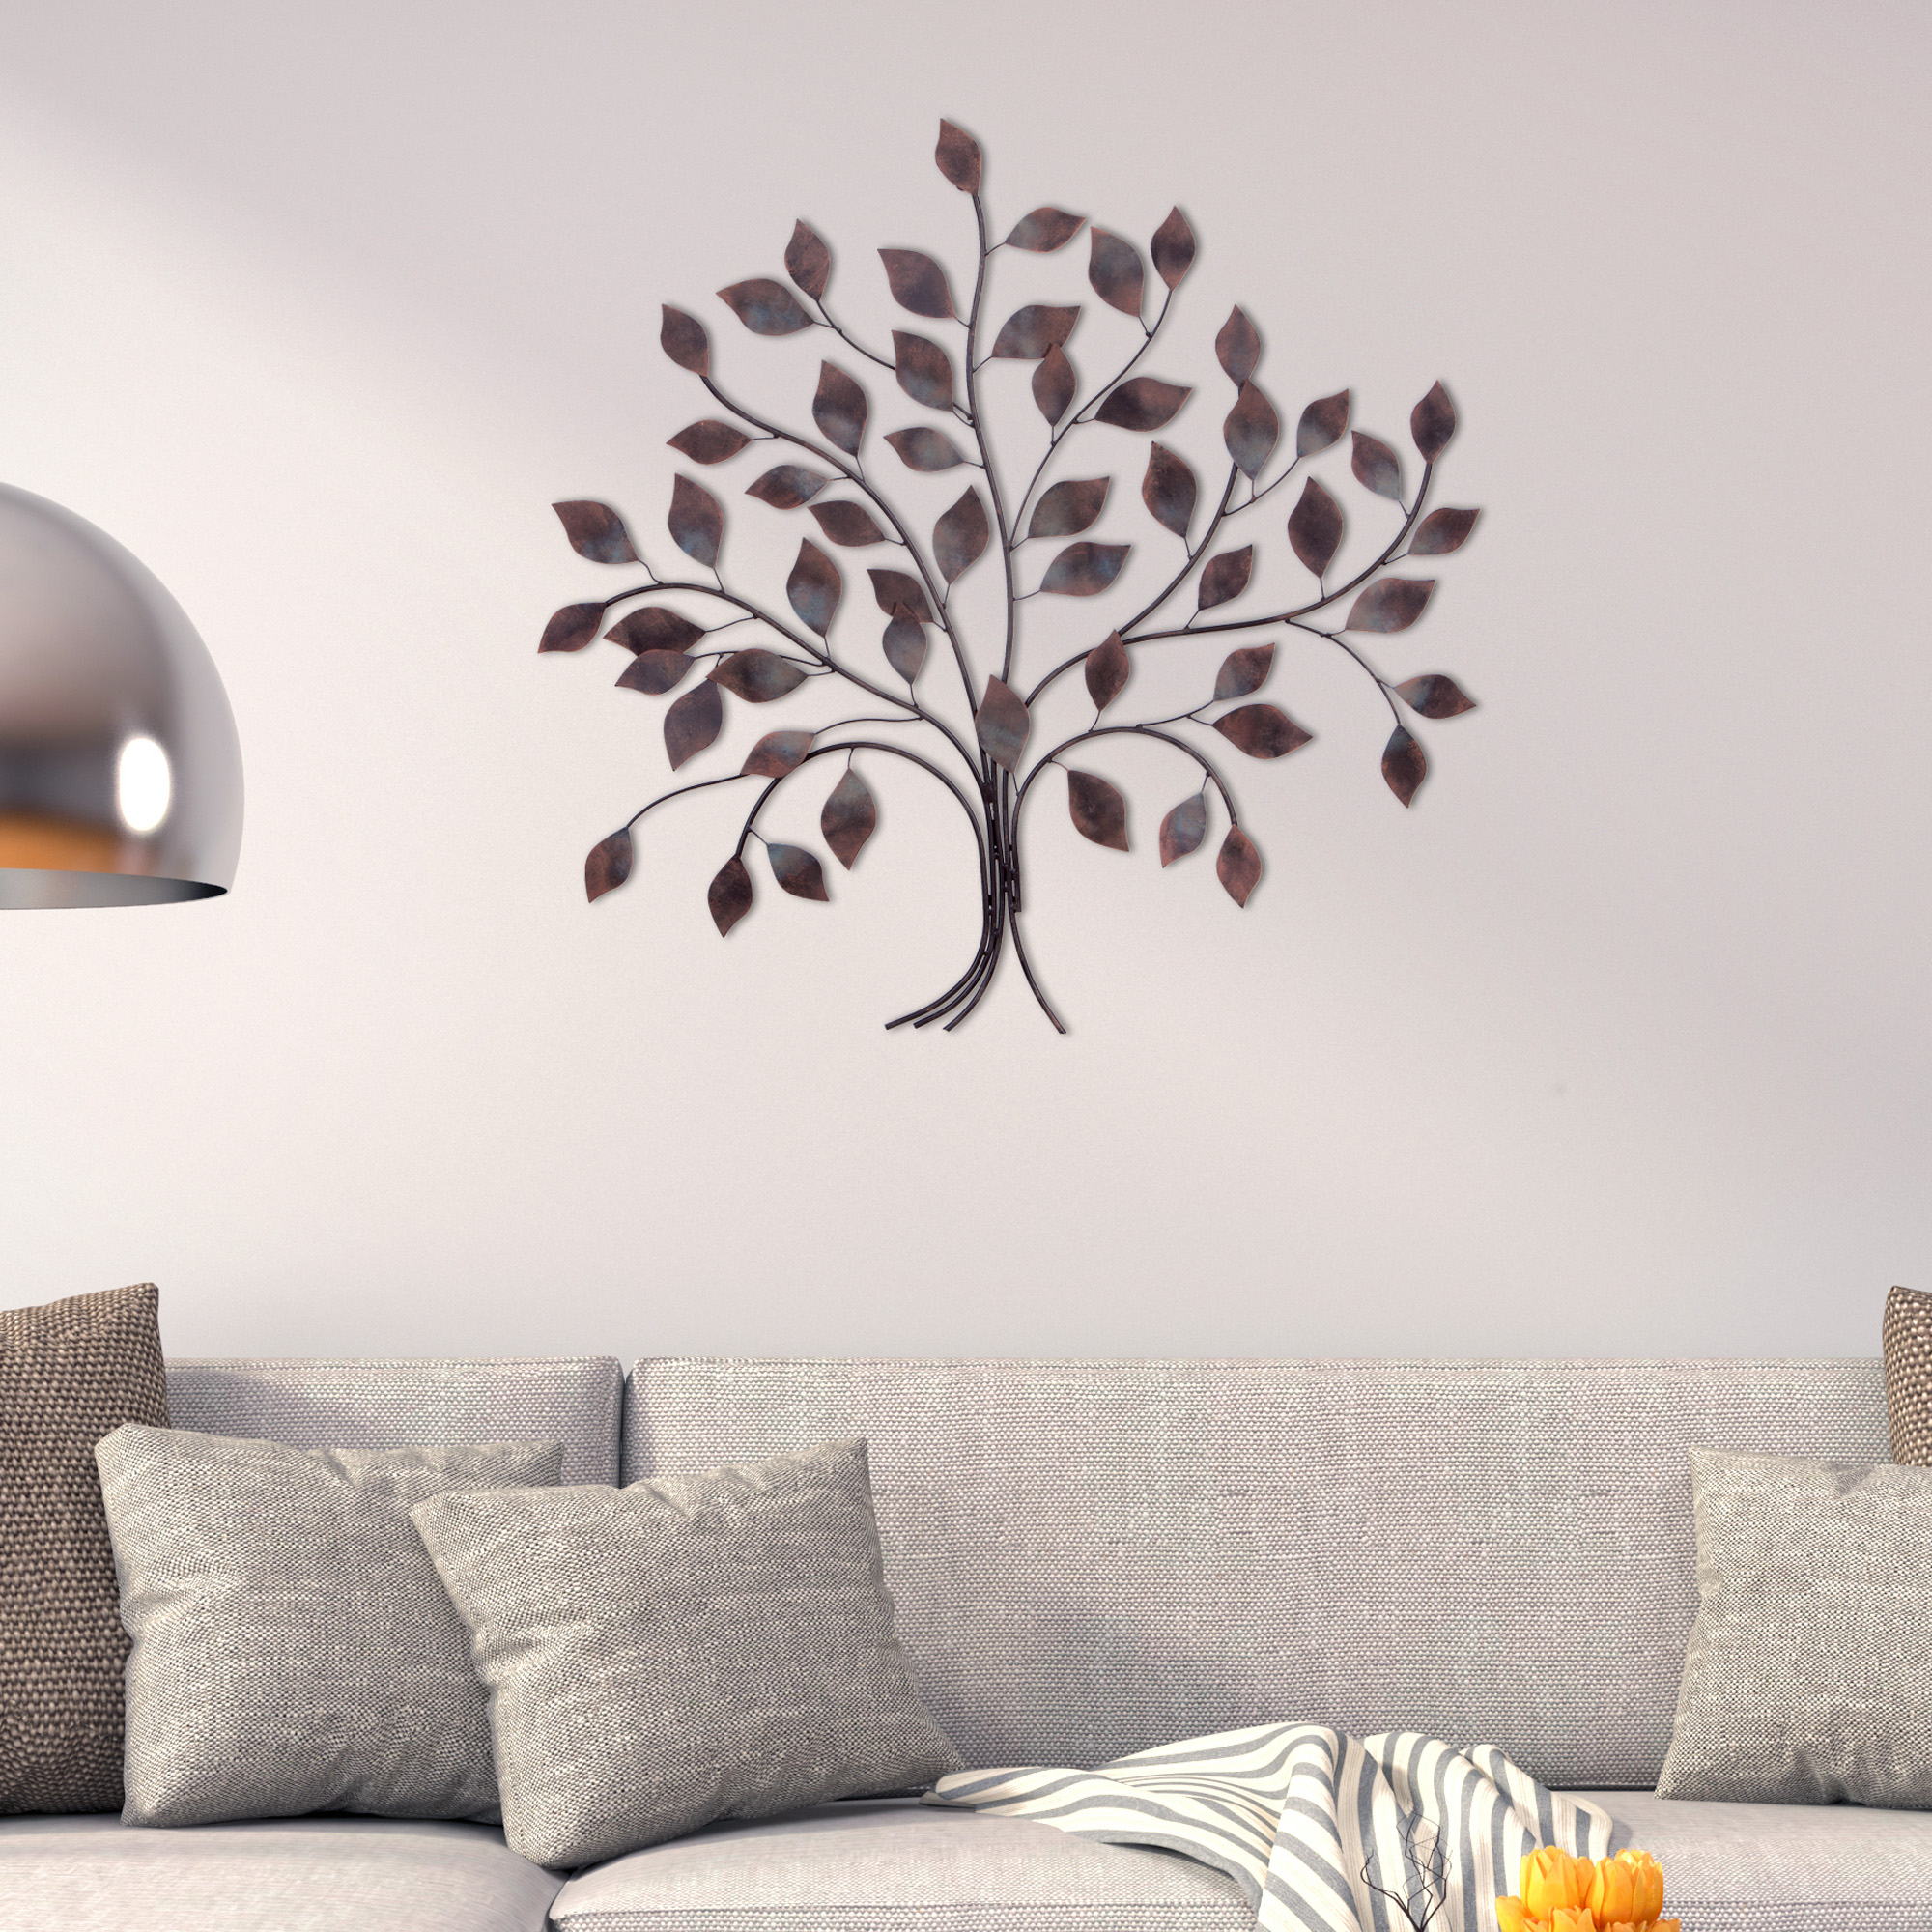 Patton Wall Decor Bronze Tree Branch Decorative Metal Wall Décor Within Best And Newest Oil Rubbed Metal Wall Decor (Gallery 6 of 20)